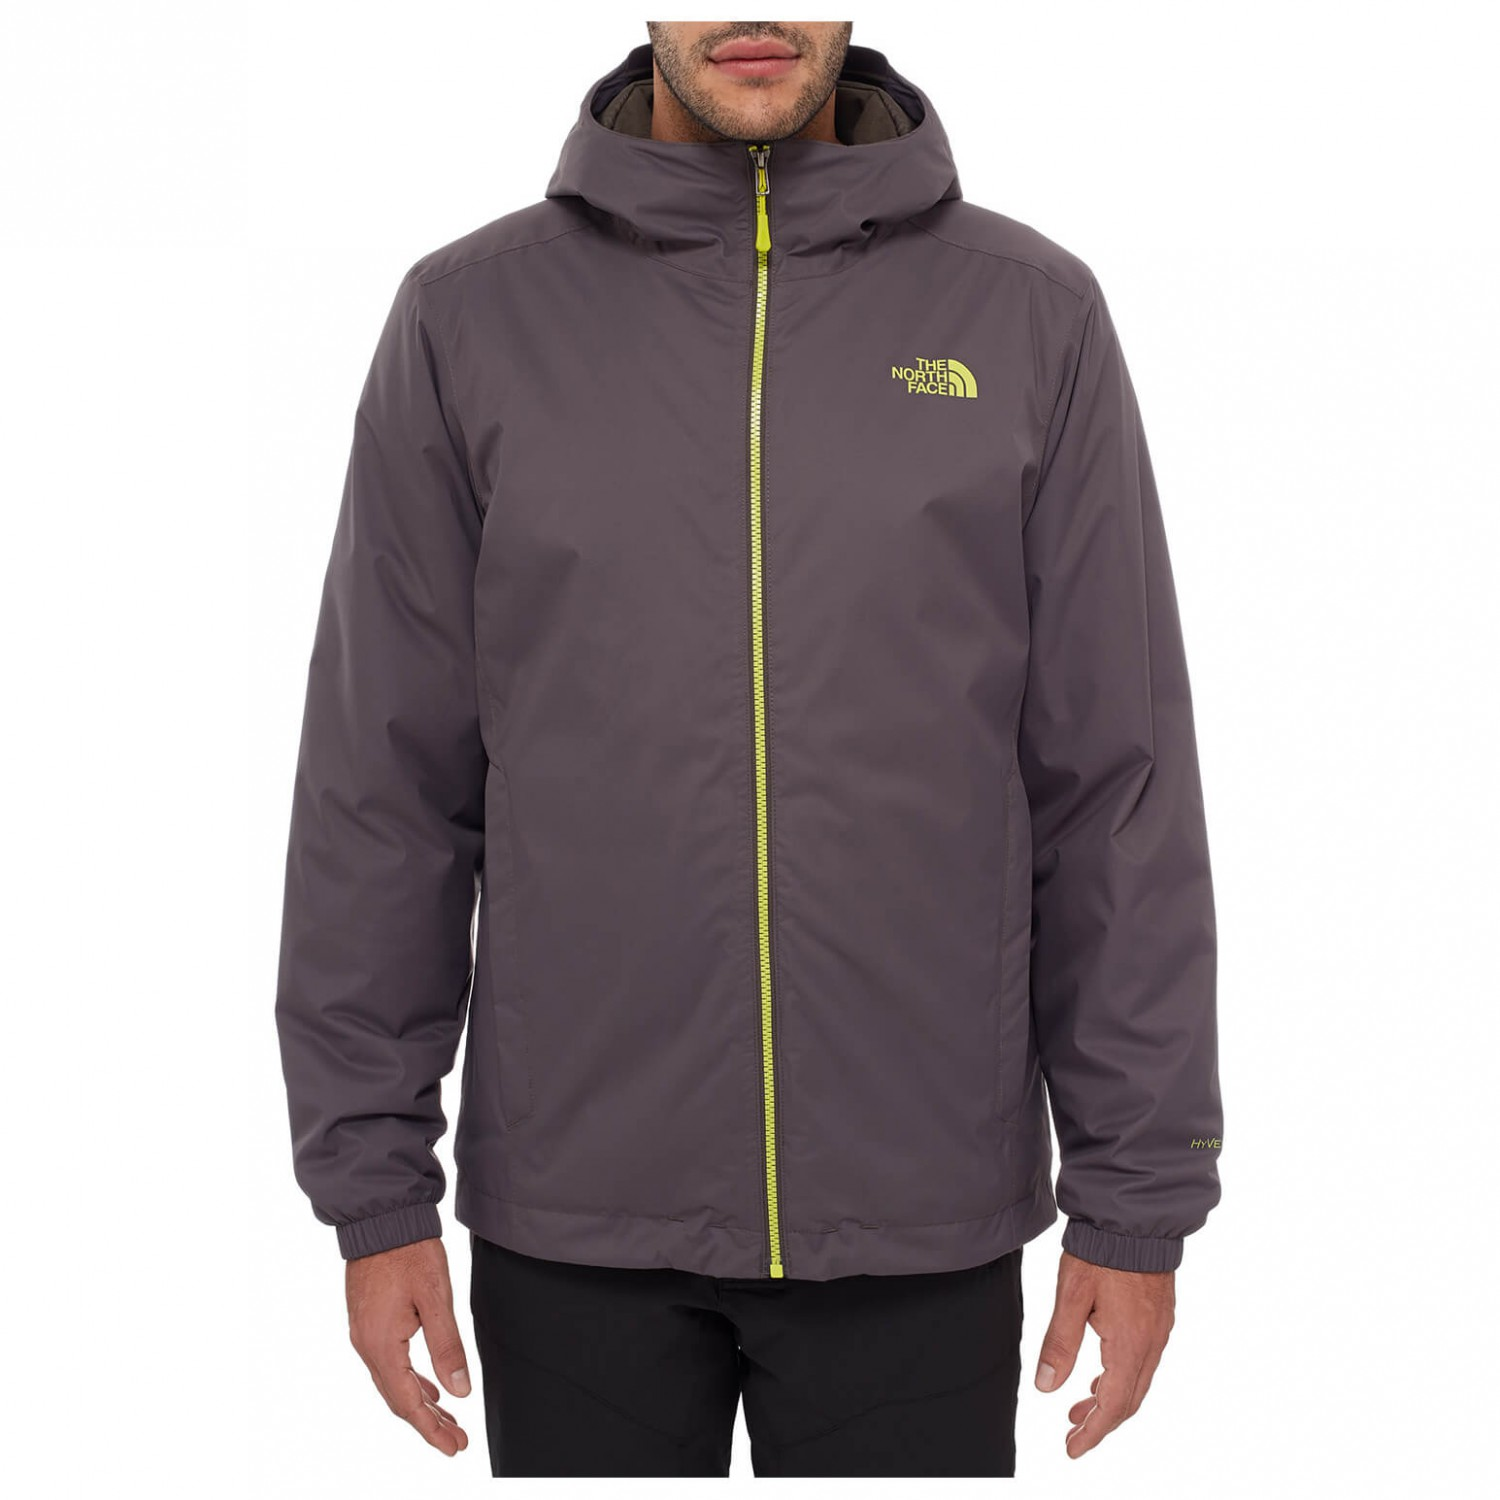 the north face quest insulated jacket winterjacke versandkostenfrei. Black Bedroom Furniture Sets. Home Design Ideas